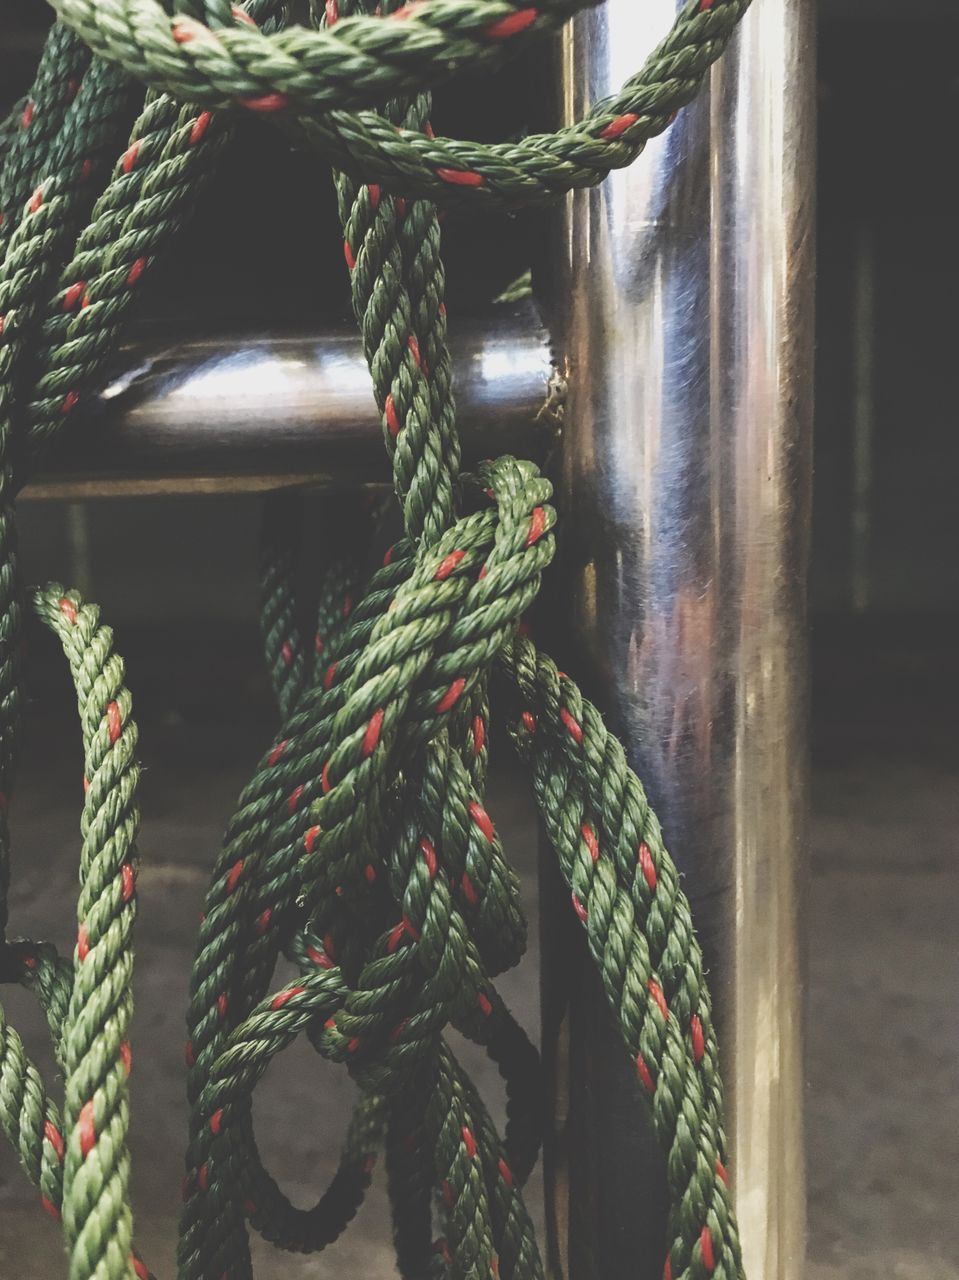 rope, strength, tied up, tied knot, durability, no people, close-up, chain, outdoors, day